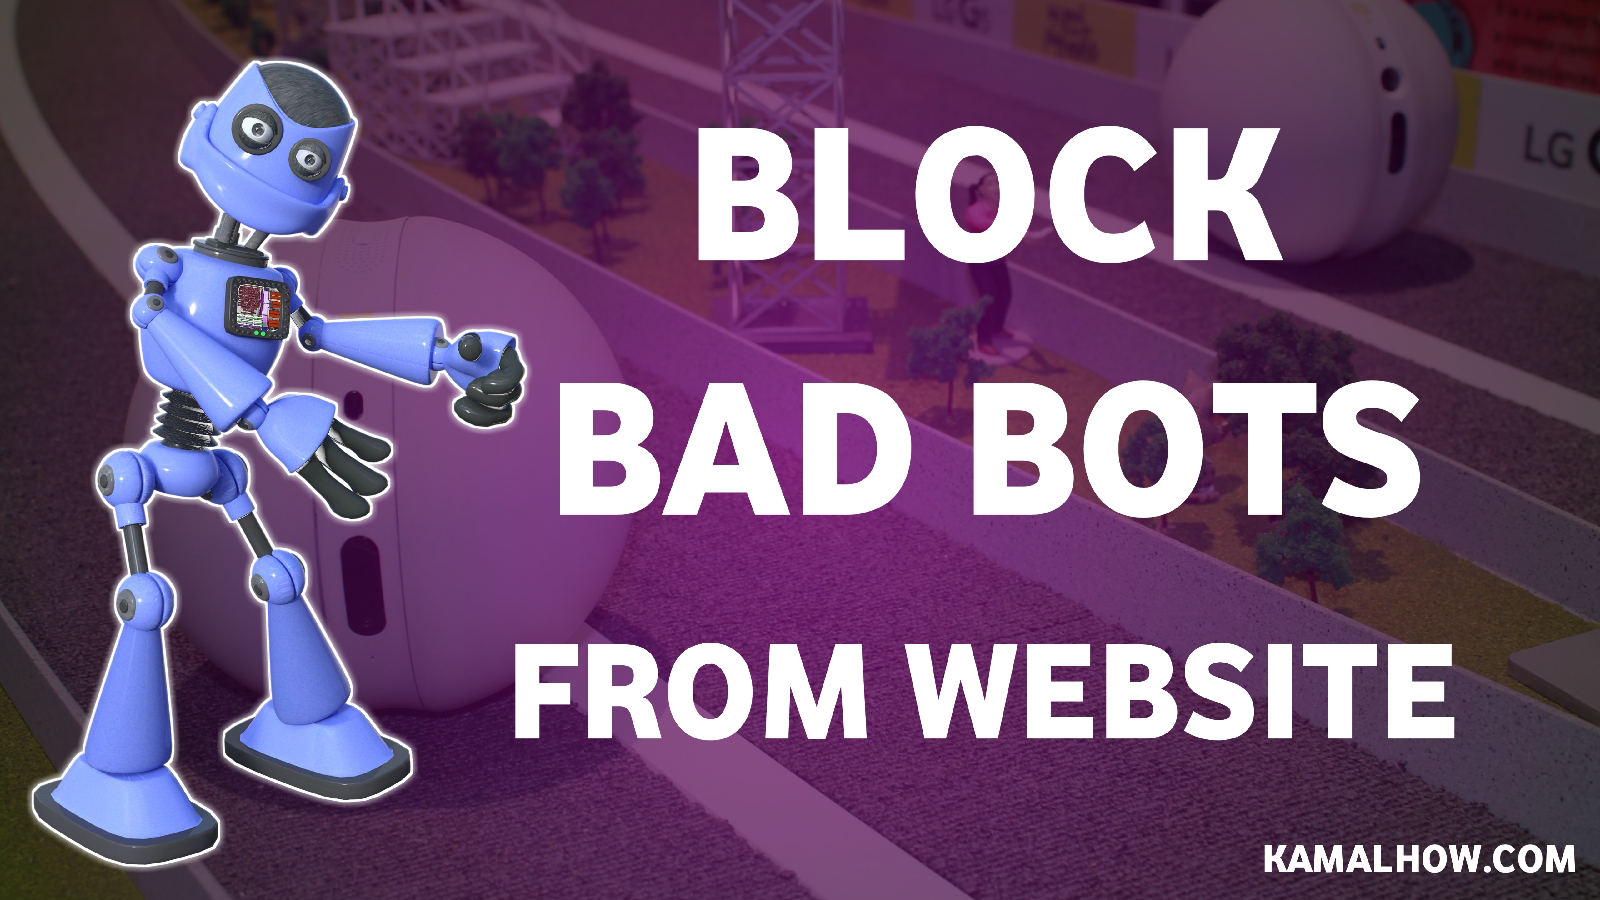 3 Steps To Find And Block Bad Bots, Block Bad Bots - New Security Feature from KeyCDN, Detecting and blocking bad bots, How to Prevent Hackers from Using Bad Bots, How to Block Bad Website Bots and Spiders With .htaccess, website ke bad bots ko block kaise kare, kamal how, kamalhow, how to stop bots from crawling my site, how to block bots from my website, apache ultimate-bad bot-blocker, bad bot access attempt, hindi technology